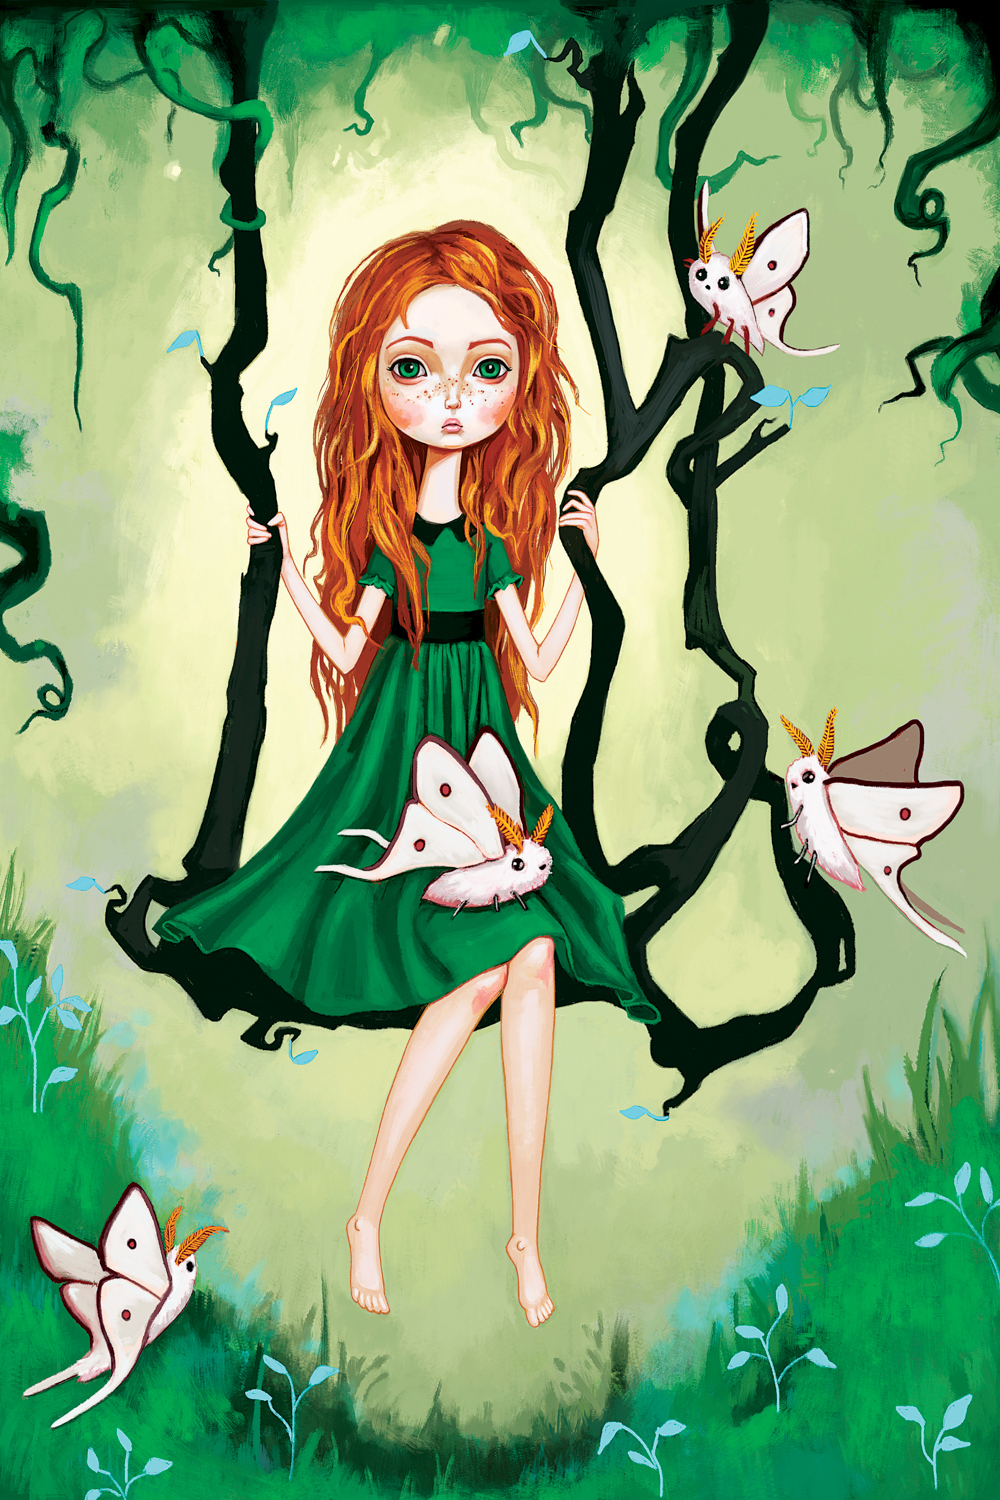 Illustration of a girl with long red hair wearing a green dress sitting on a swing made of vines with butterflies in a green forest